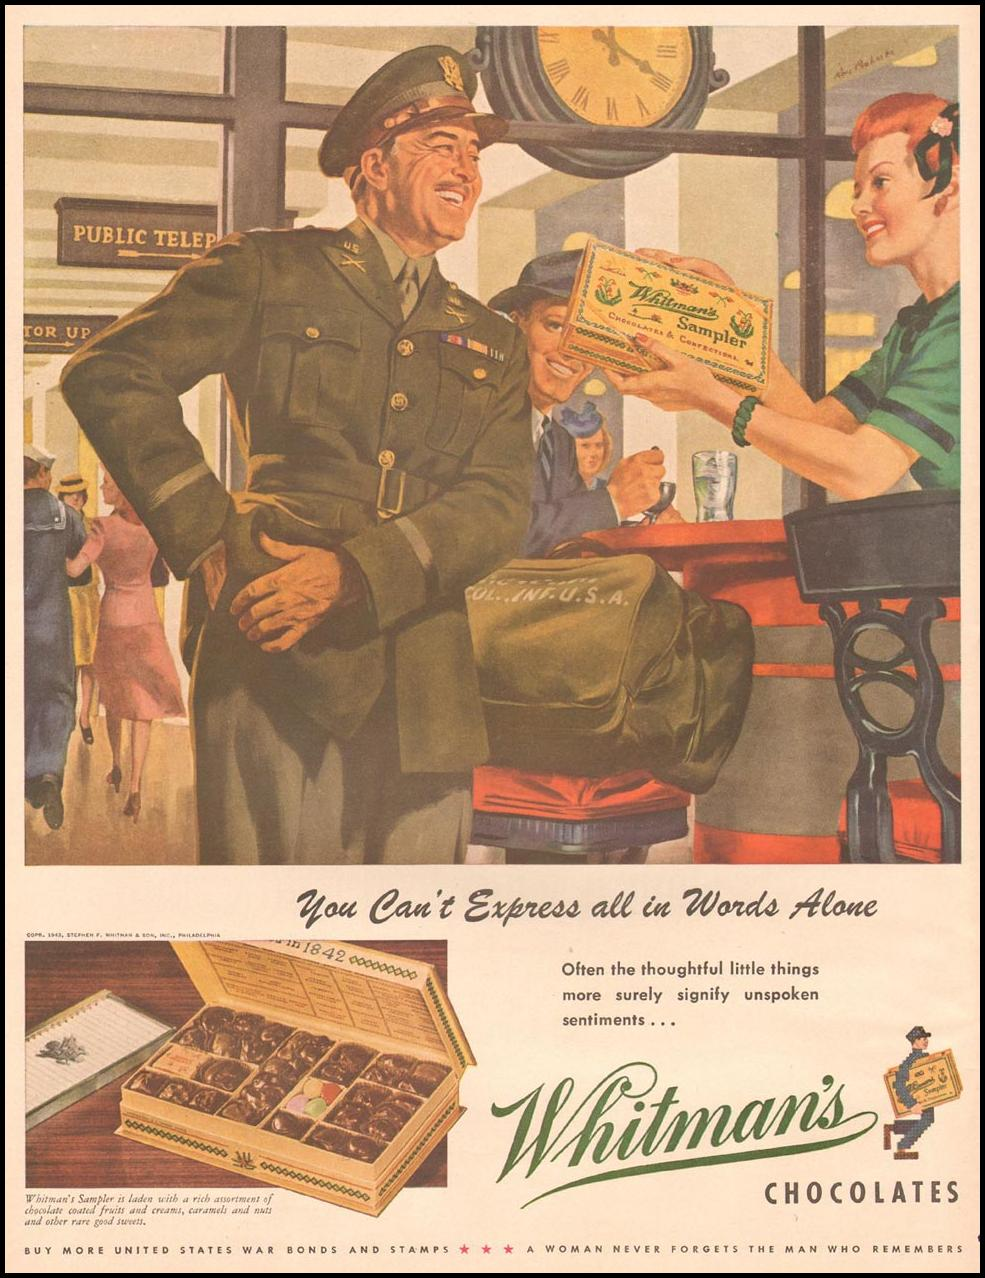 WHITMAN'S CHOCOLATES LIFE 10/11/1943 p. 92